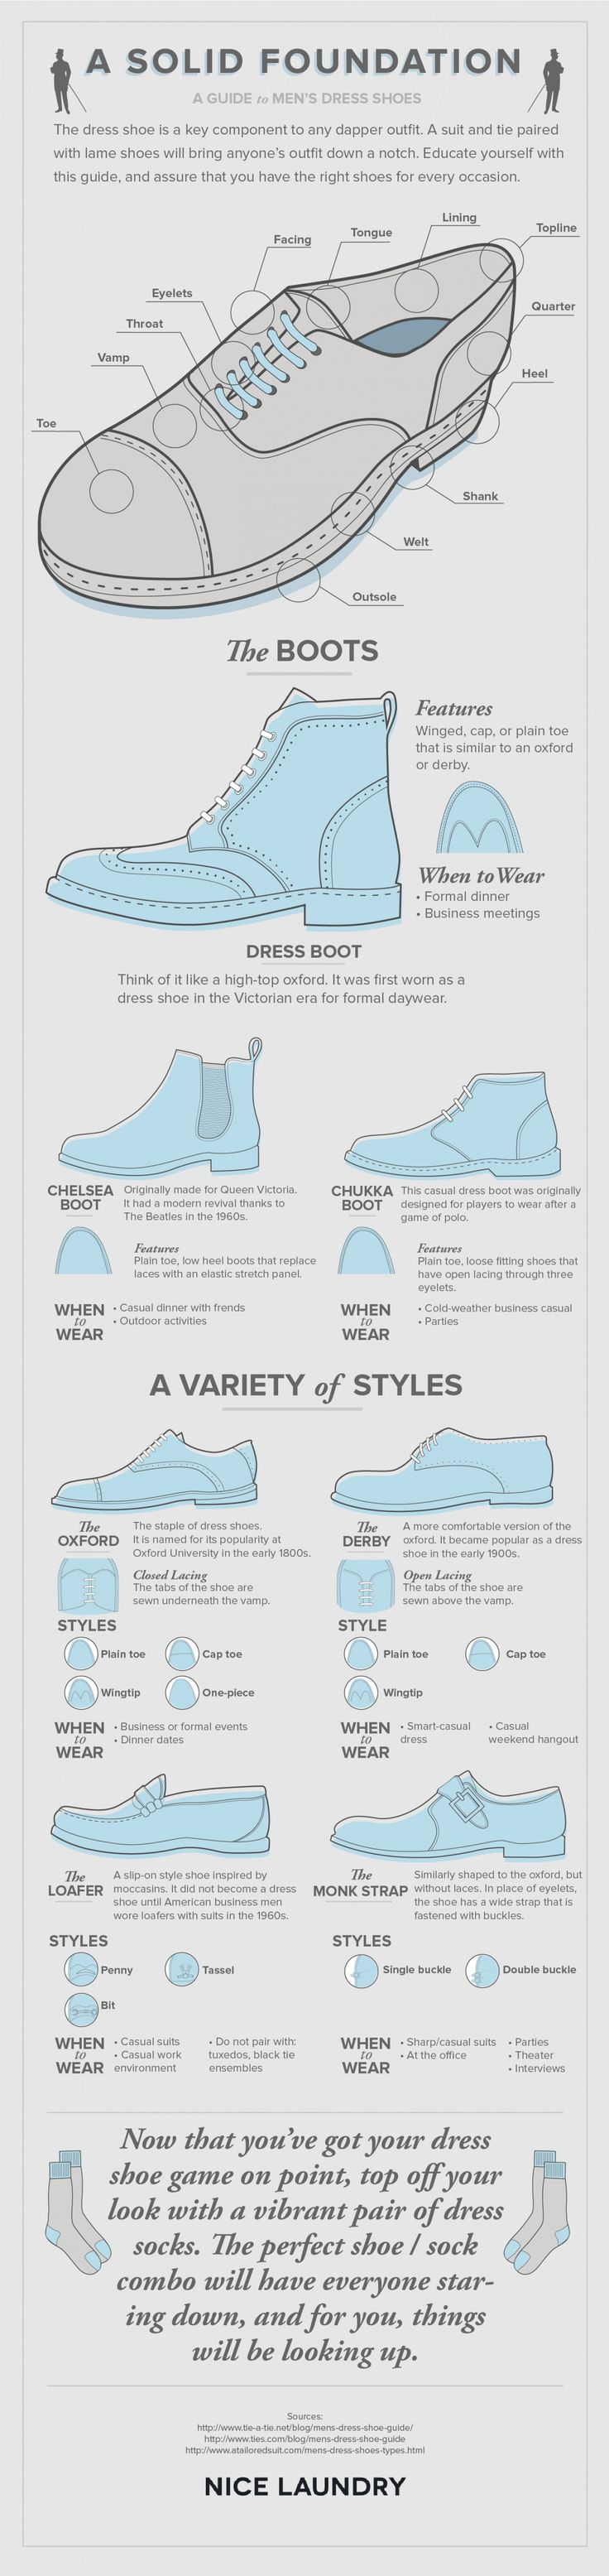 a visual guide to men's dress shoes